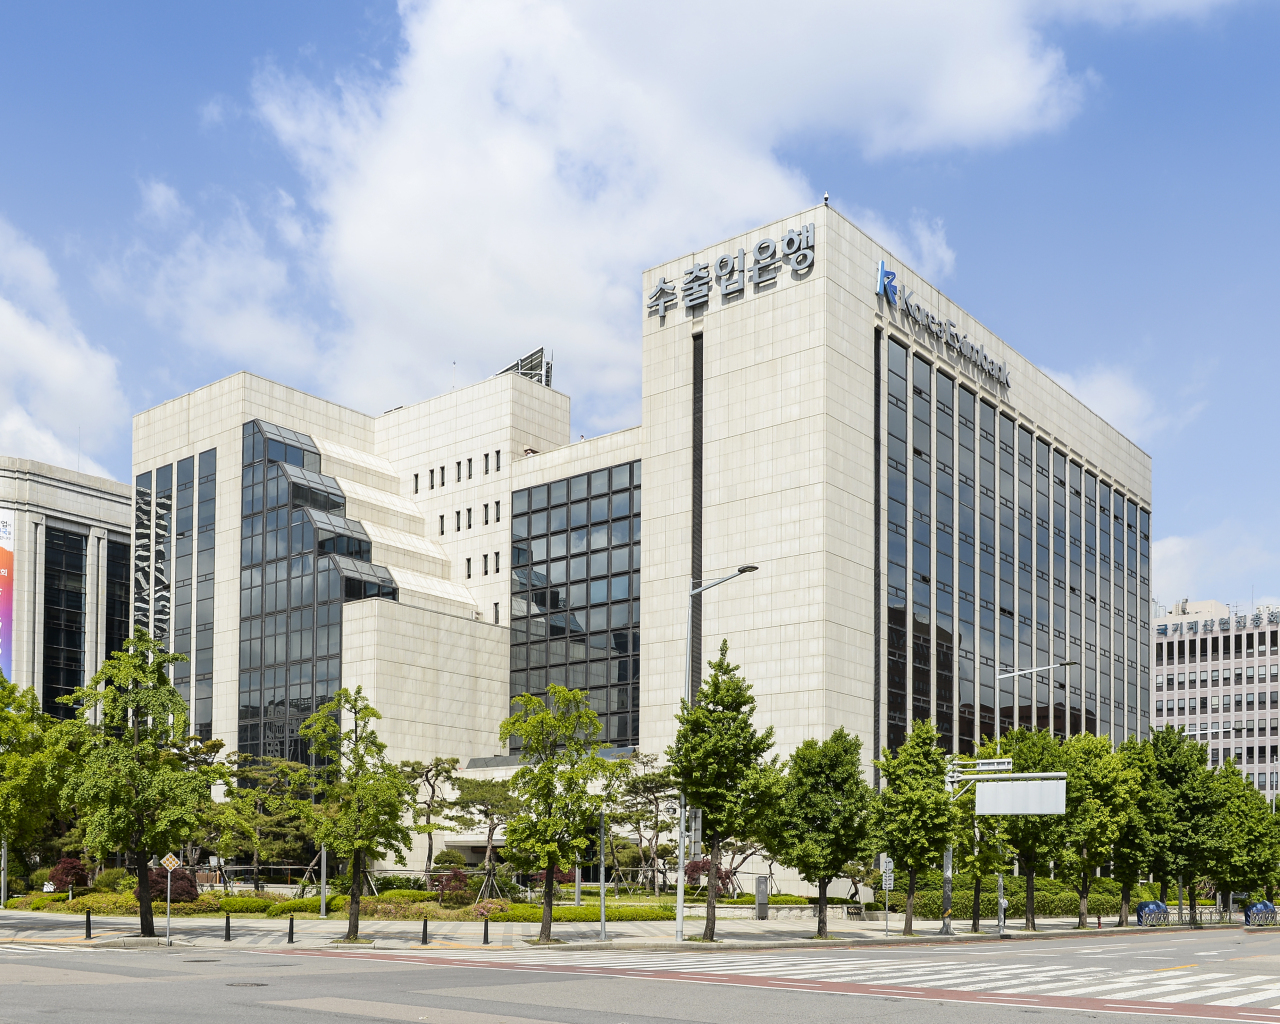 The Export-Import Bank of Korea headquarters in Seoul (Eximbank)